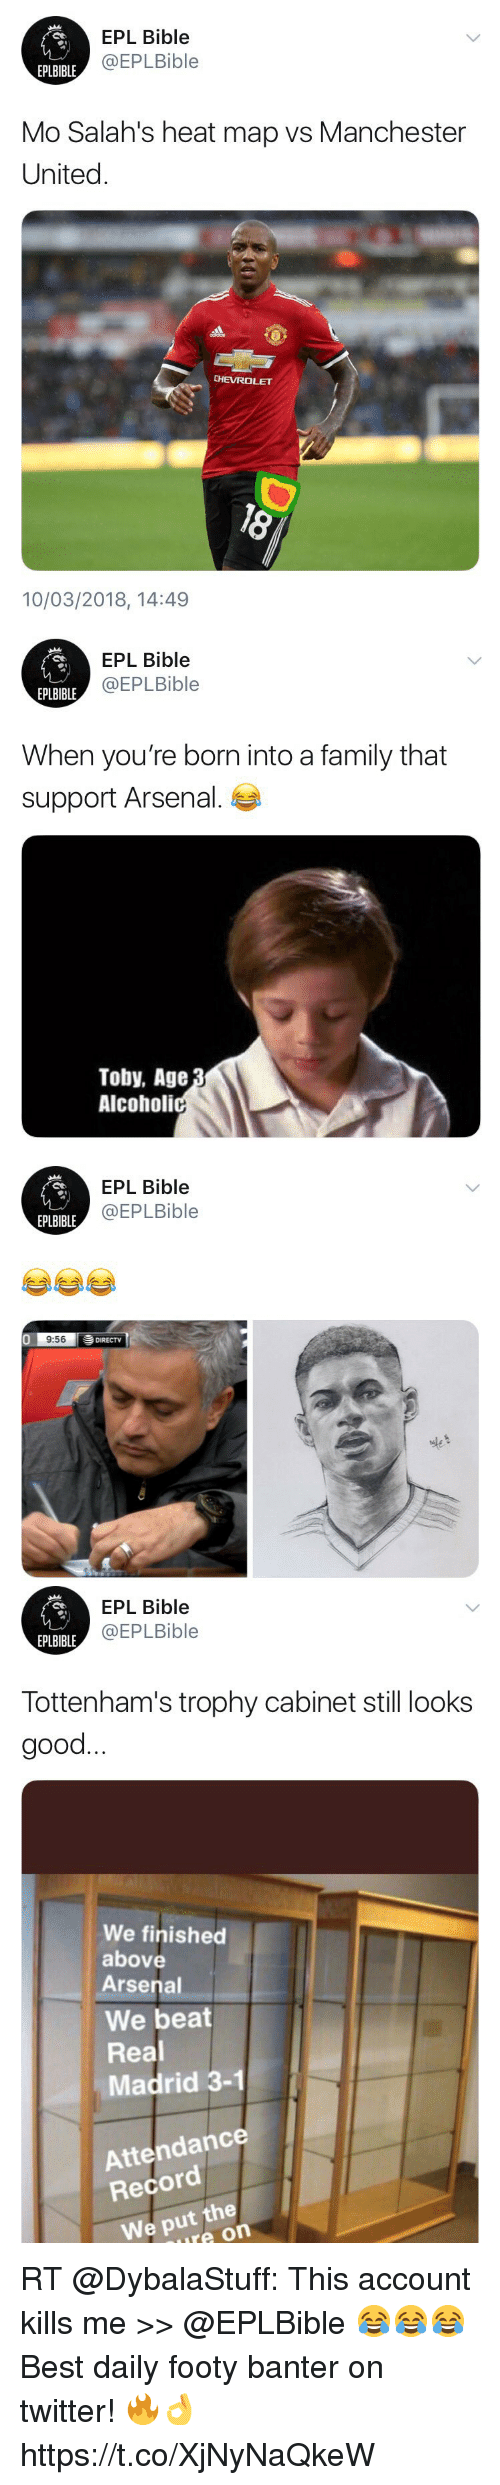 Arsenal, Family, and Memes: EPL Bible  @EPLBible  EPLBIBLE  Mo Salah's heat map vs Manchester  United.  CHEVROLET  10/03/2018, 14:49   EPL Bible  @EPLBible  EPLBIBLE  When you're born into a family that  support Arsenal.  Toby, Age  Alcoholi   EPL Bible  @EPLBible  EPLBIBLE  0  9:56  DIRECTV   EPL Bible  @EPLBible  EPLBIBLE  Tottenham's trophy cabinet still looks  good  We finished  above  Arsenal  We beat  Real  Madrid 3-1  Attendance  Record  We put the  ure on RT @DybalaStuff: This account kills me >> @EPLBible 😂😂😂   Best daily footy banter on twitter! 🔥👌 https://t.co/XjNyNaQkeW